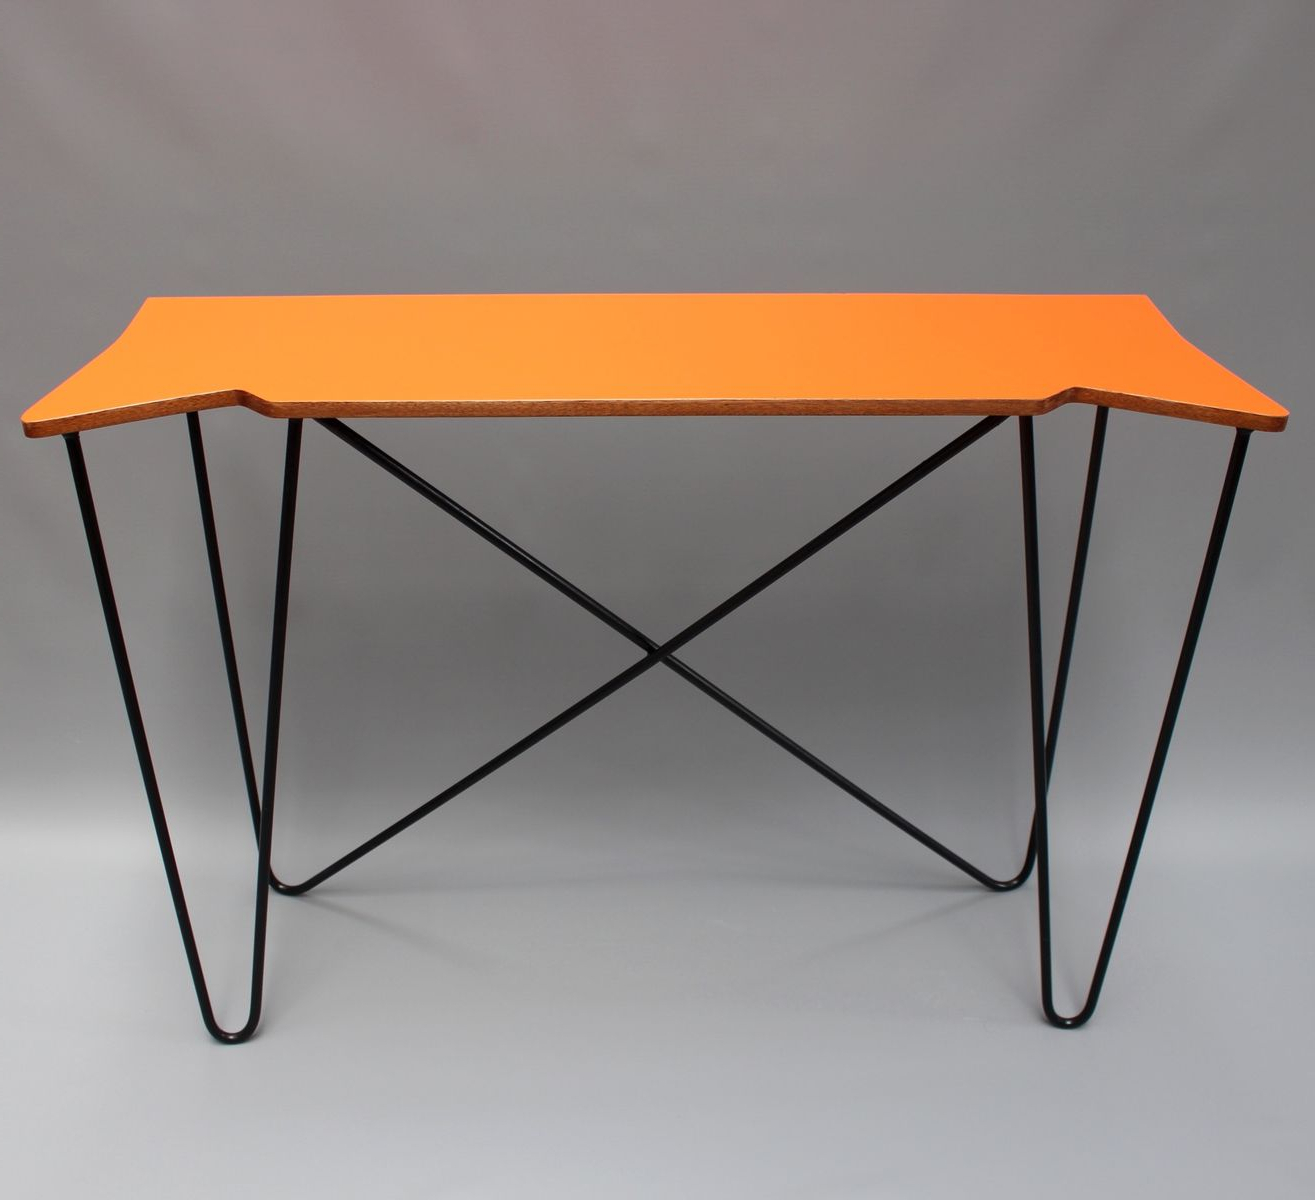 2018 Orange Inlay Console Tables With Regard To Vintage Orange Console Table 1980S For Sale At Pamono Bone Inlay (View 1 of 20)